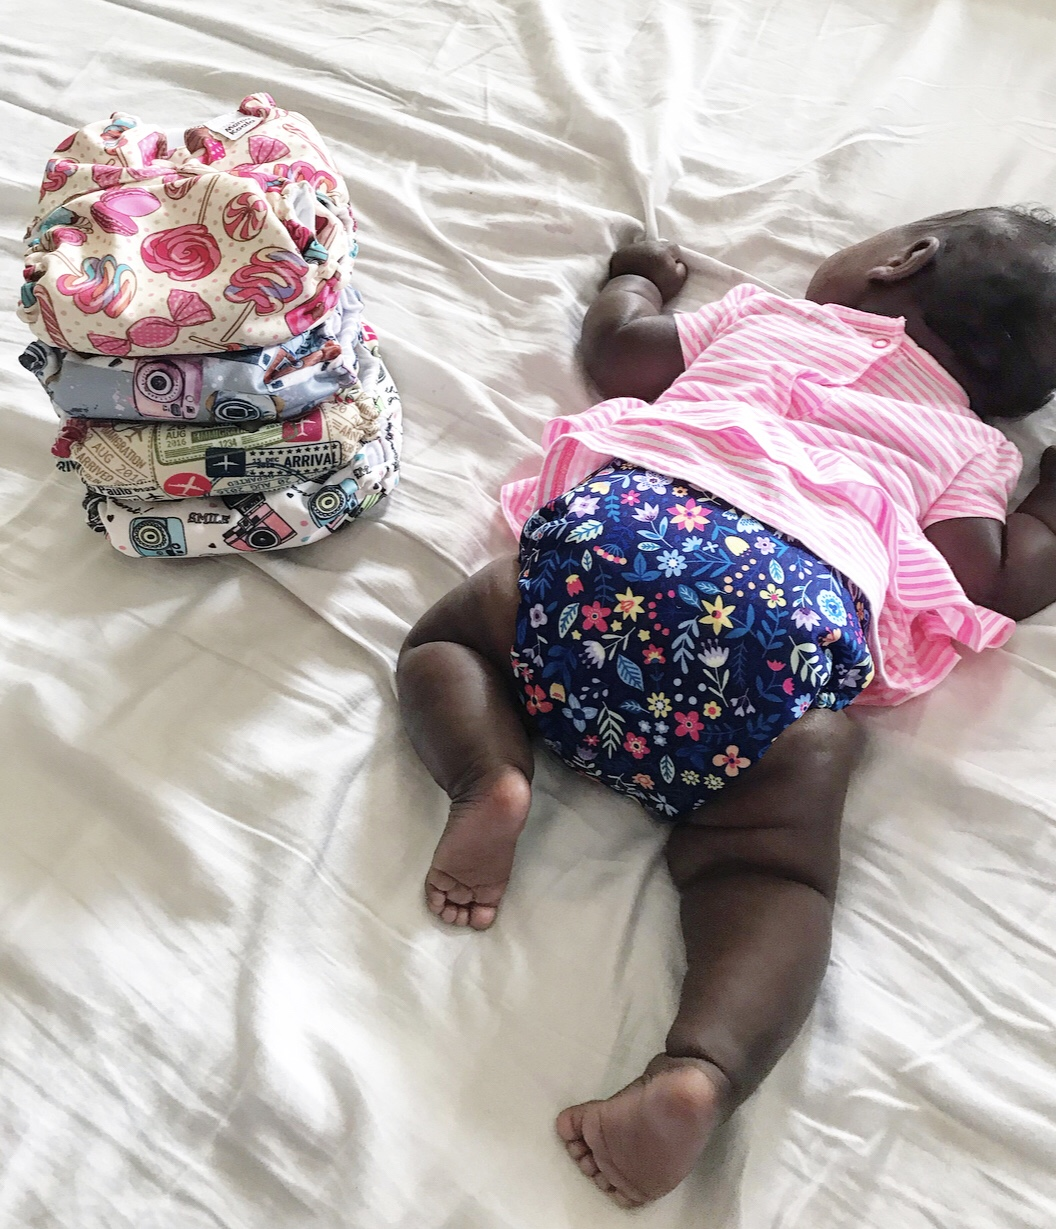 Cloth Diapering Made Easy – Types of cloth diapersexplained